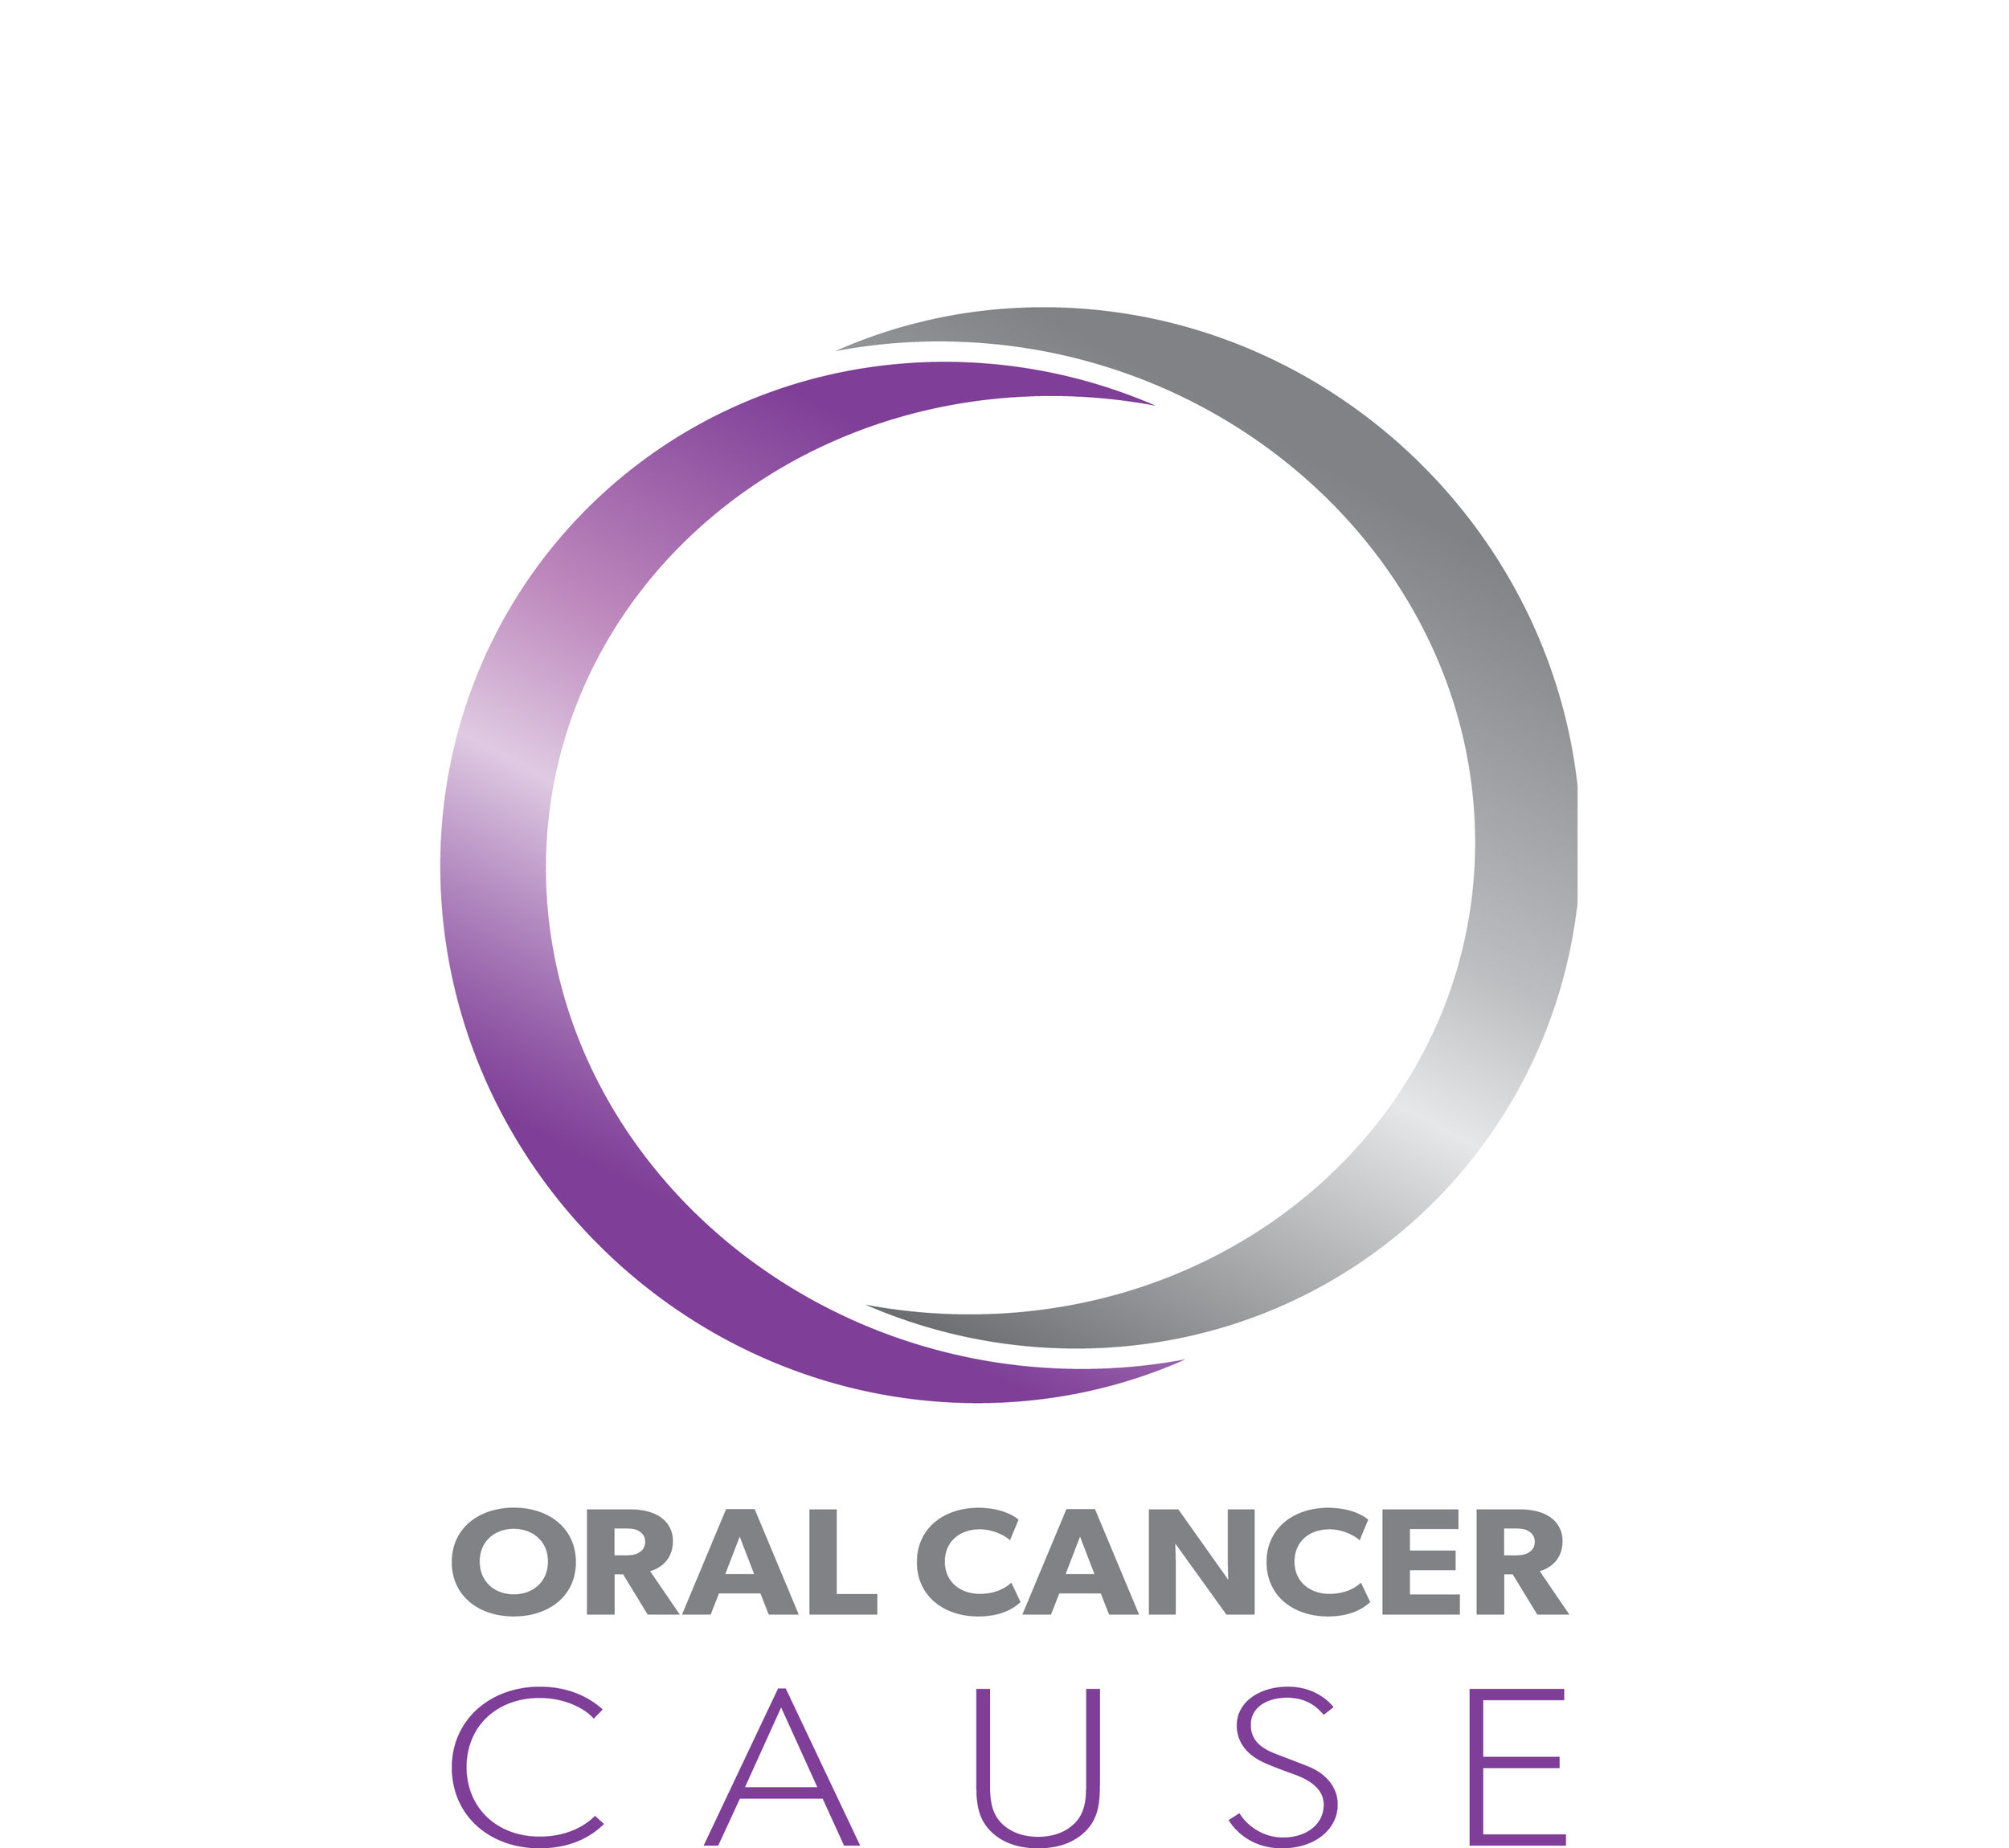 - 100% of the procceds from book sales go to Oral Cancer Cause, a non-profit which improves the quality of life for oral cancer patients through financial support so they may face the world with peace and dignity during and after medical treatment.